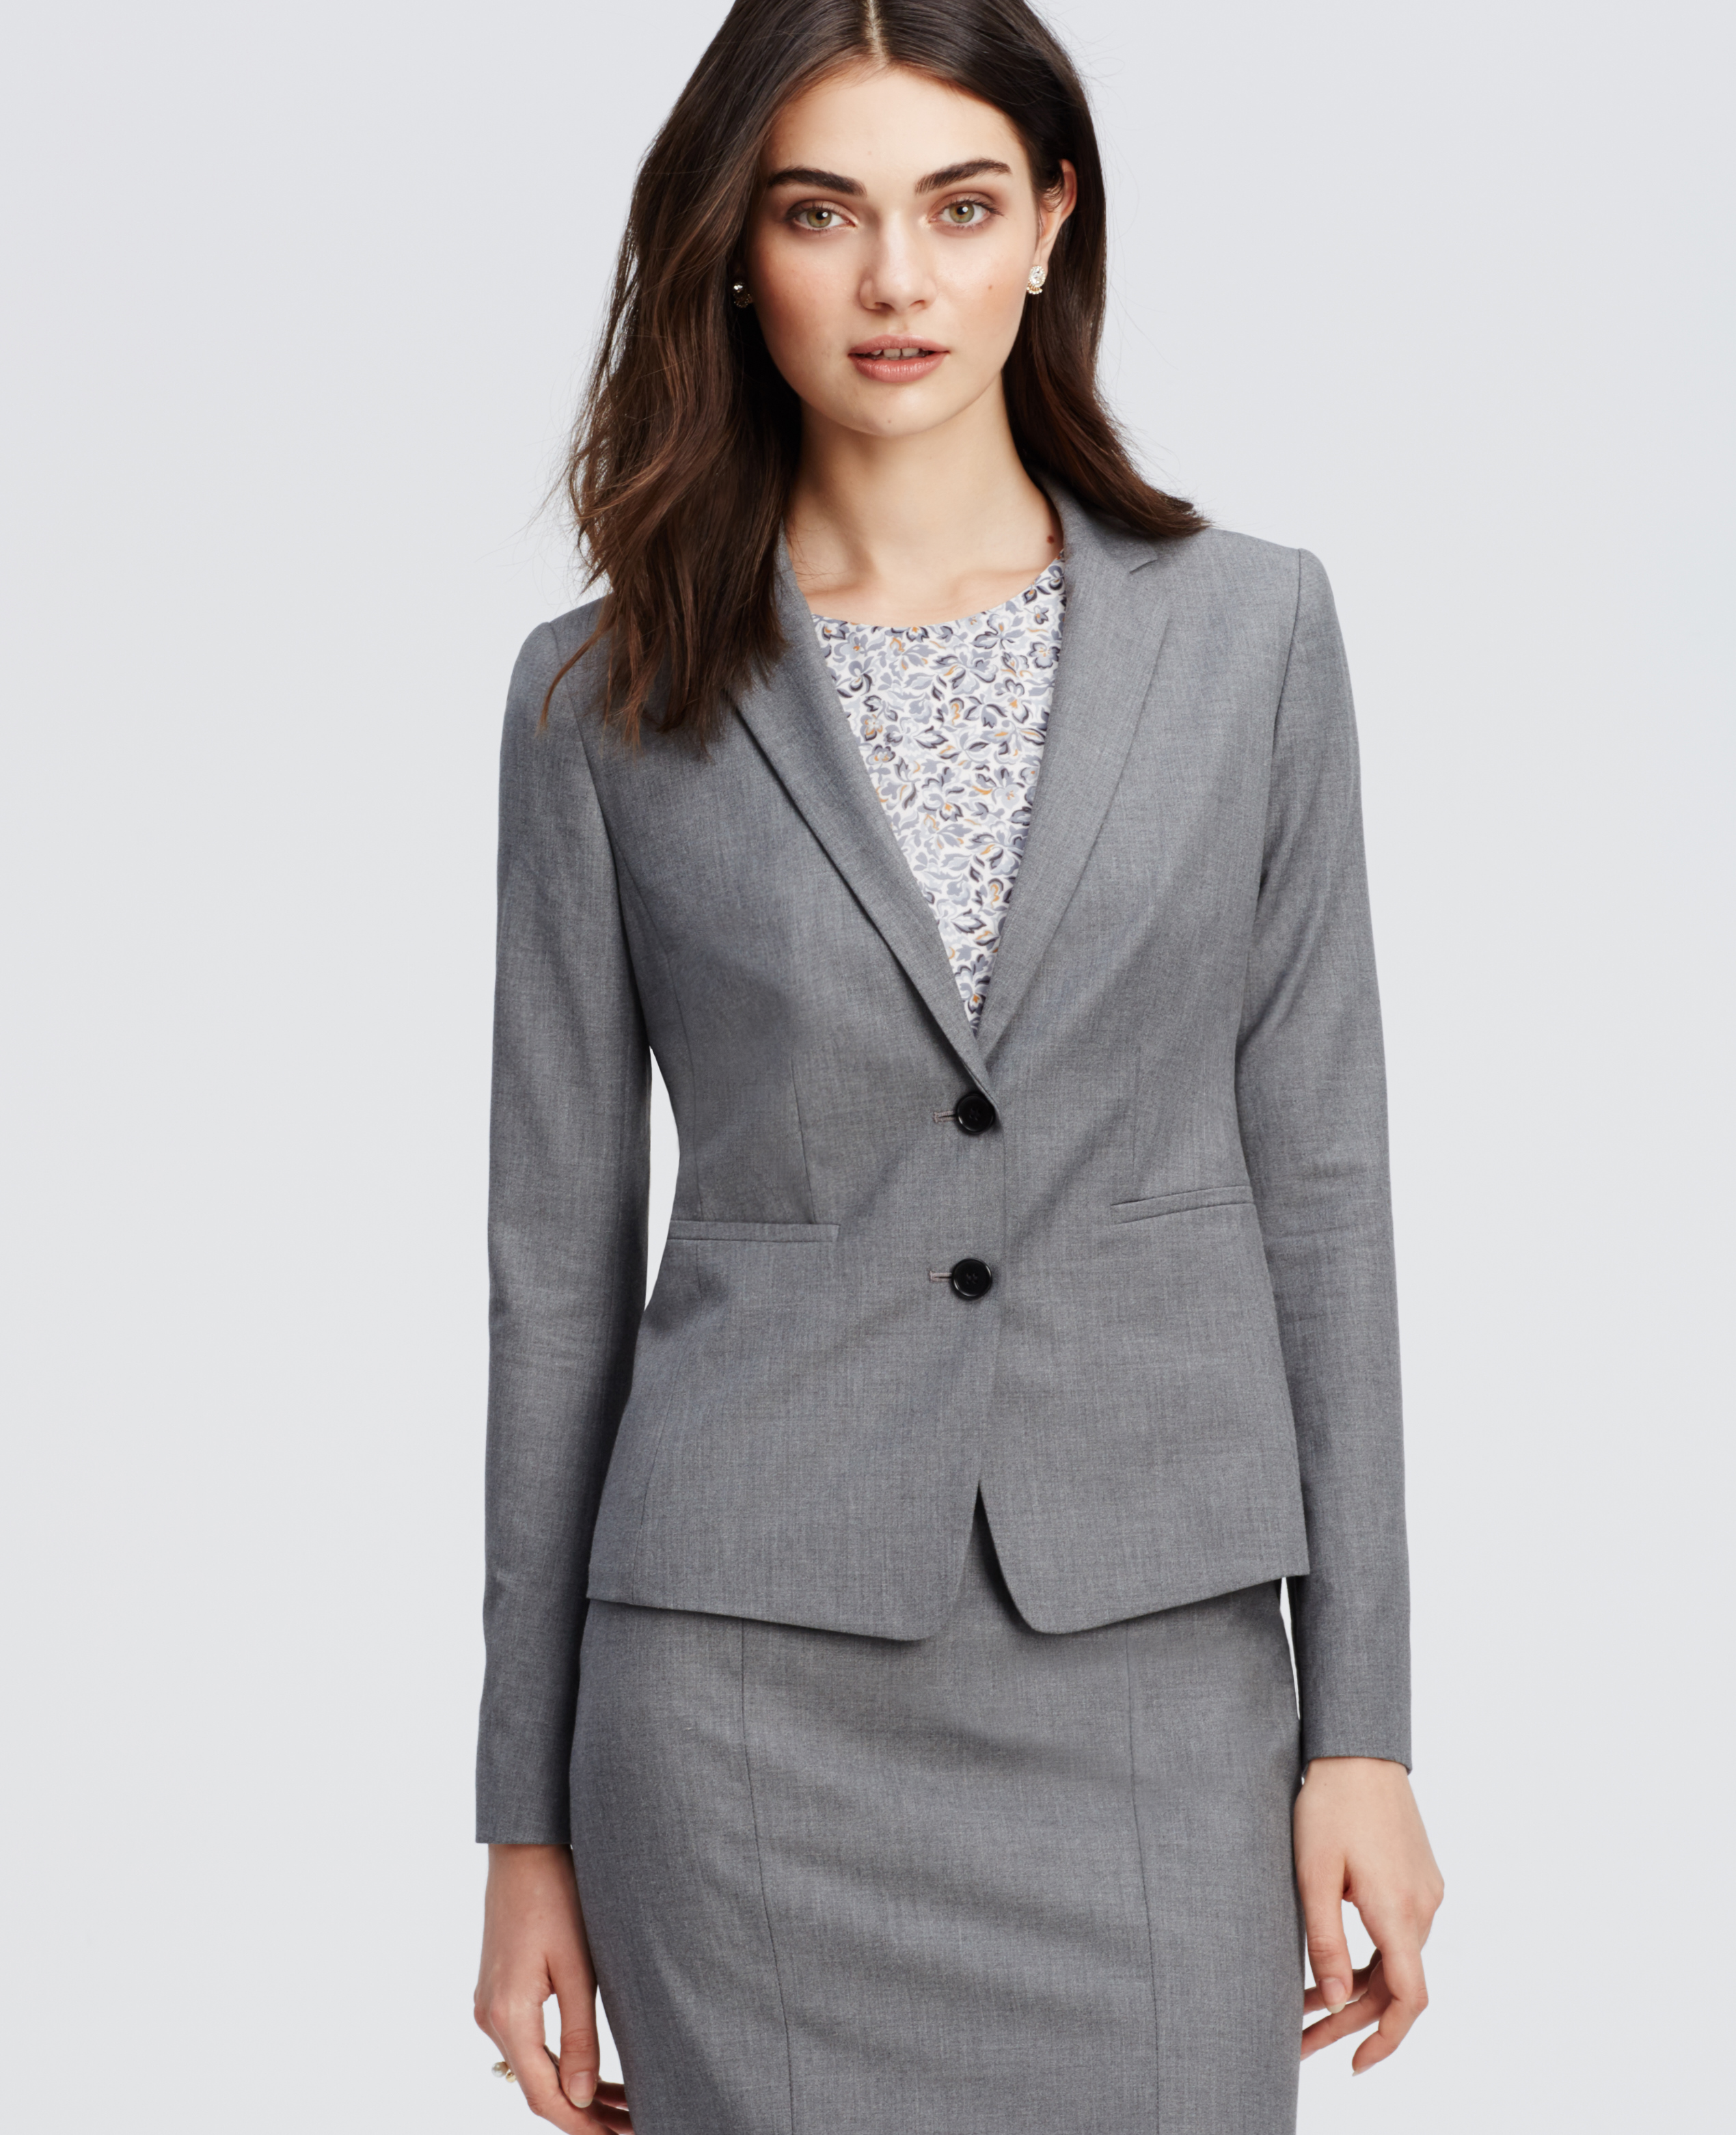 Ann taylor All-season Stretch Two Button Jacket in Gray | Lyst